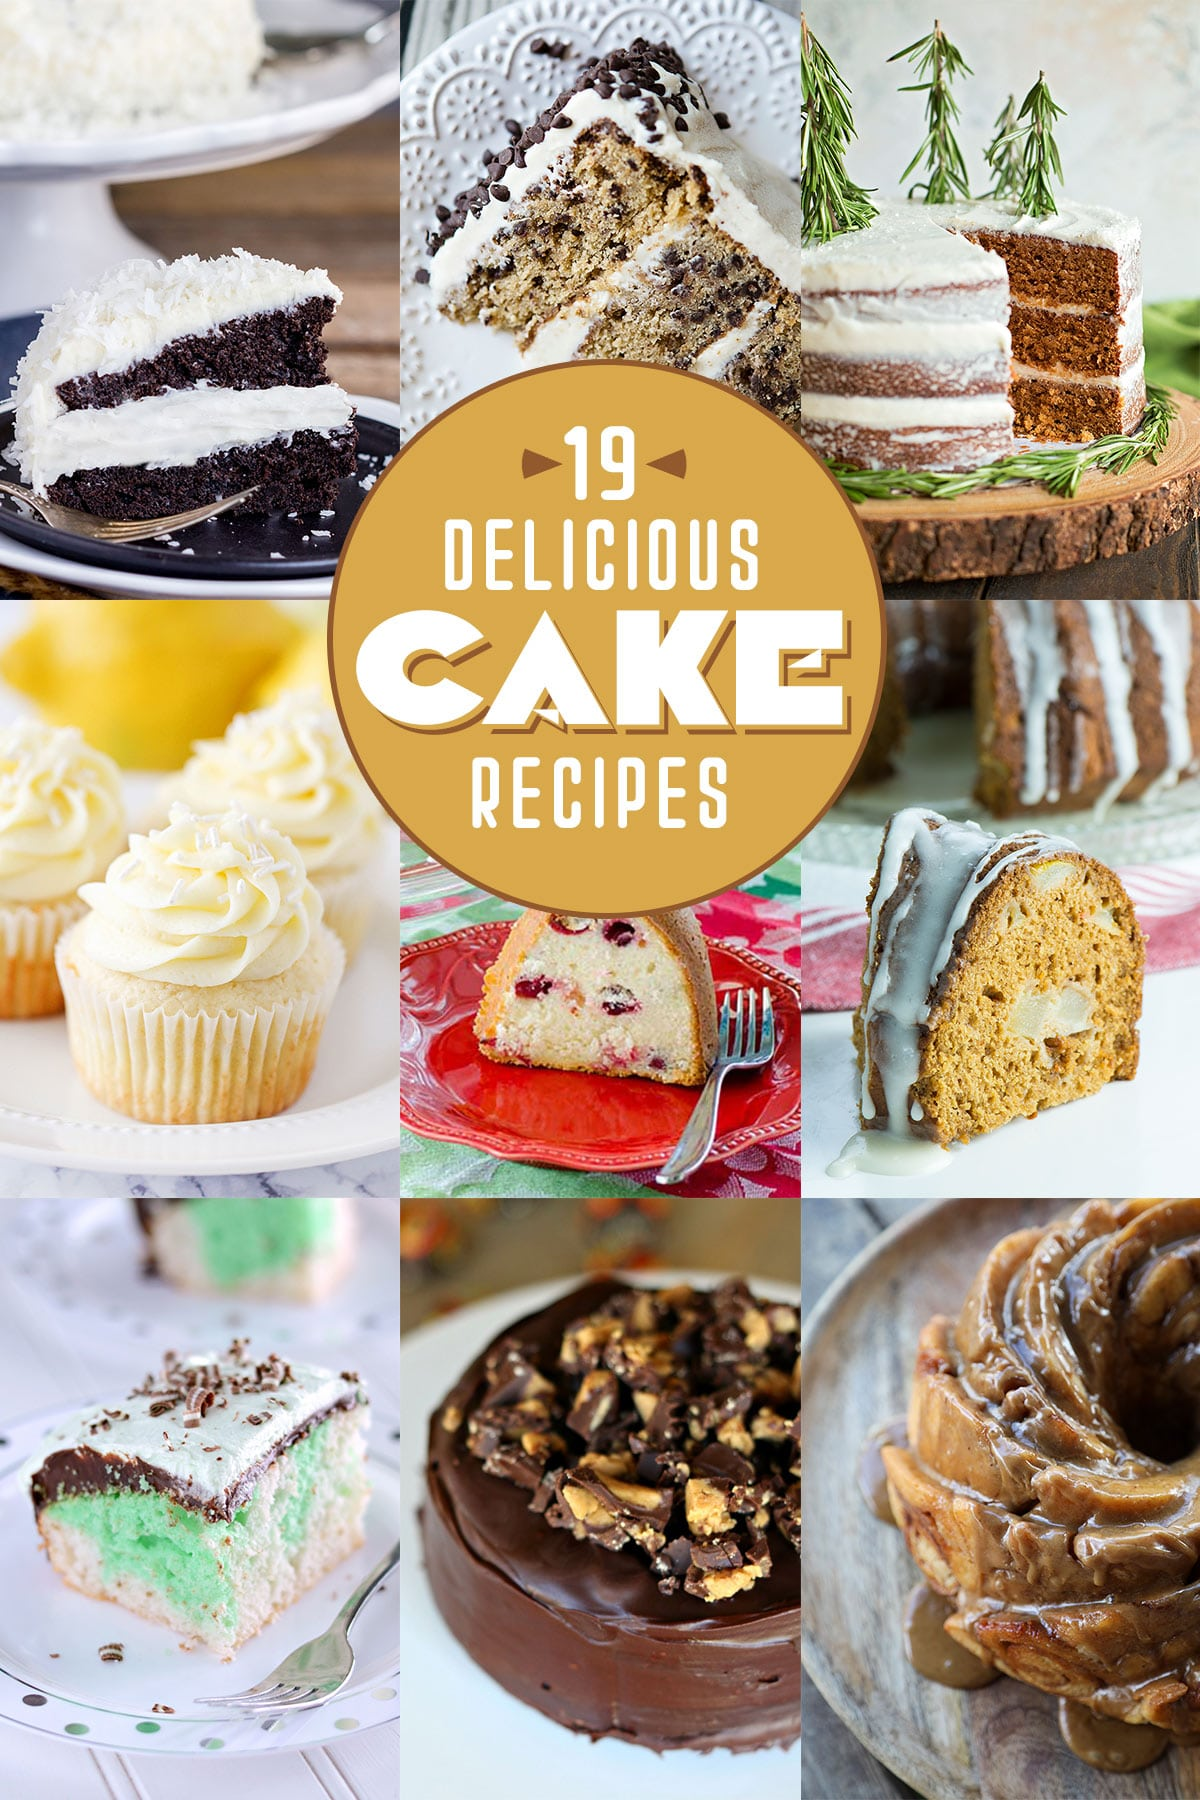 19 Delicious Cake Recipes | realmomkitchen.com